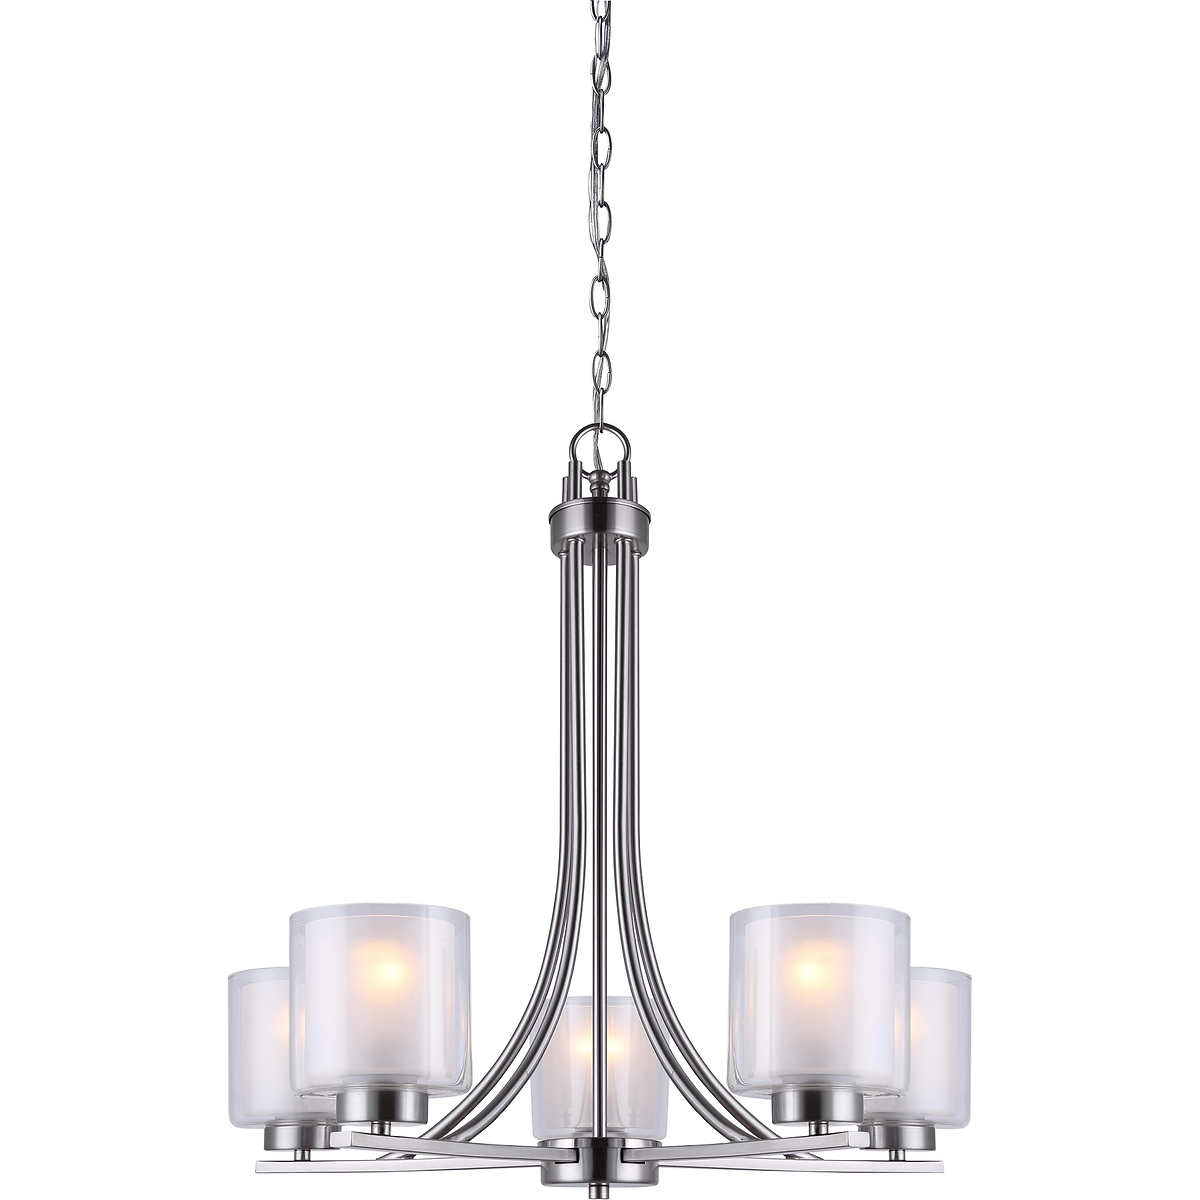 Chandelier Extraordinary Costco 2017 Design Ideas 7 Throughout Chandeliers Image 6 Of 15